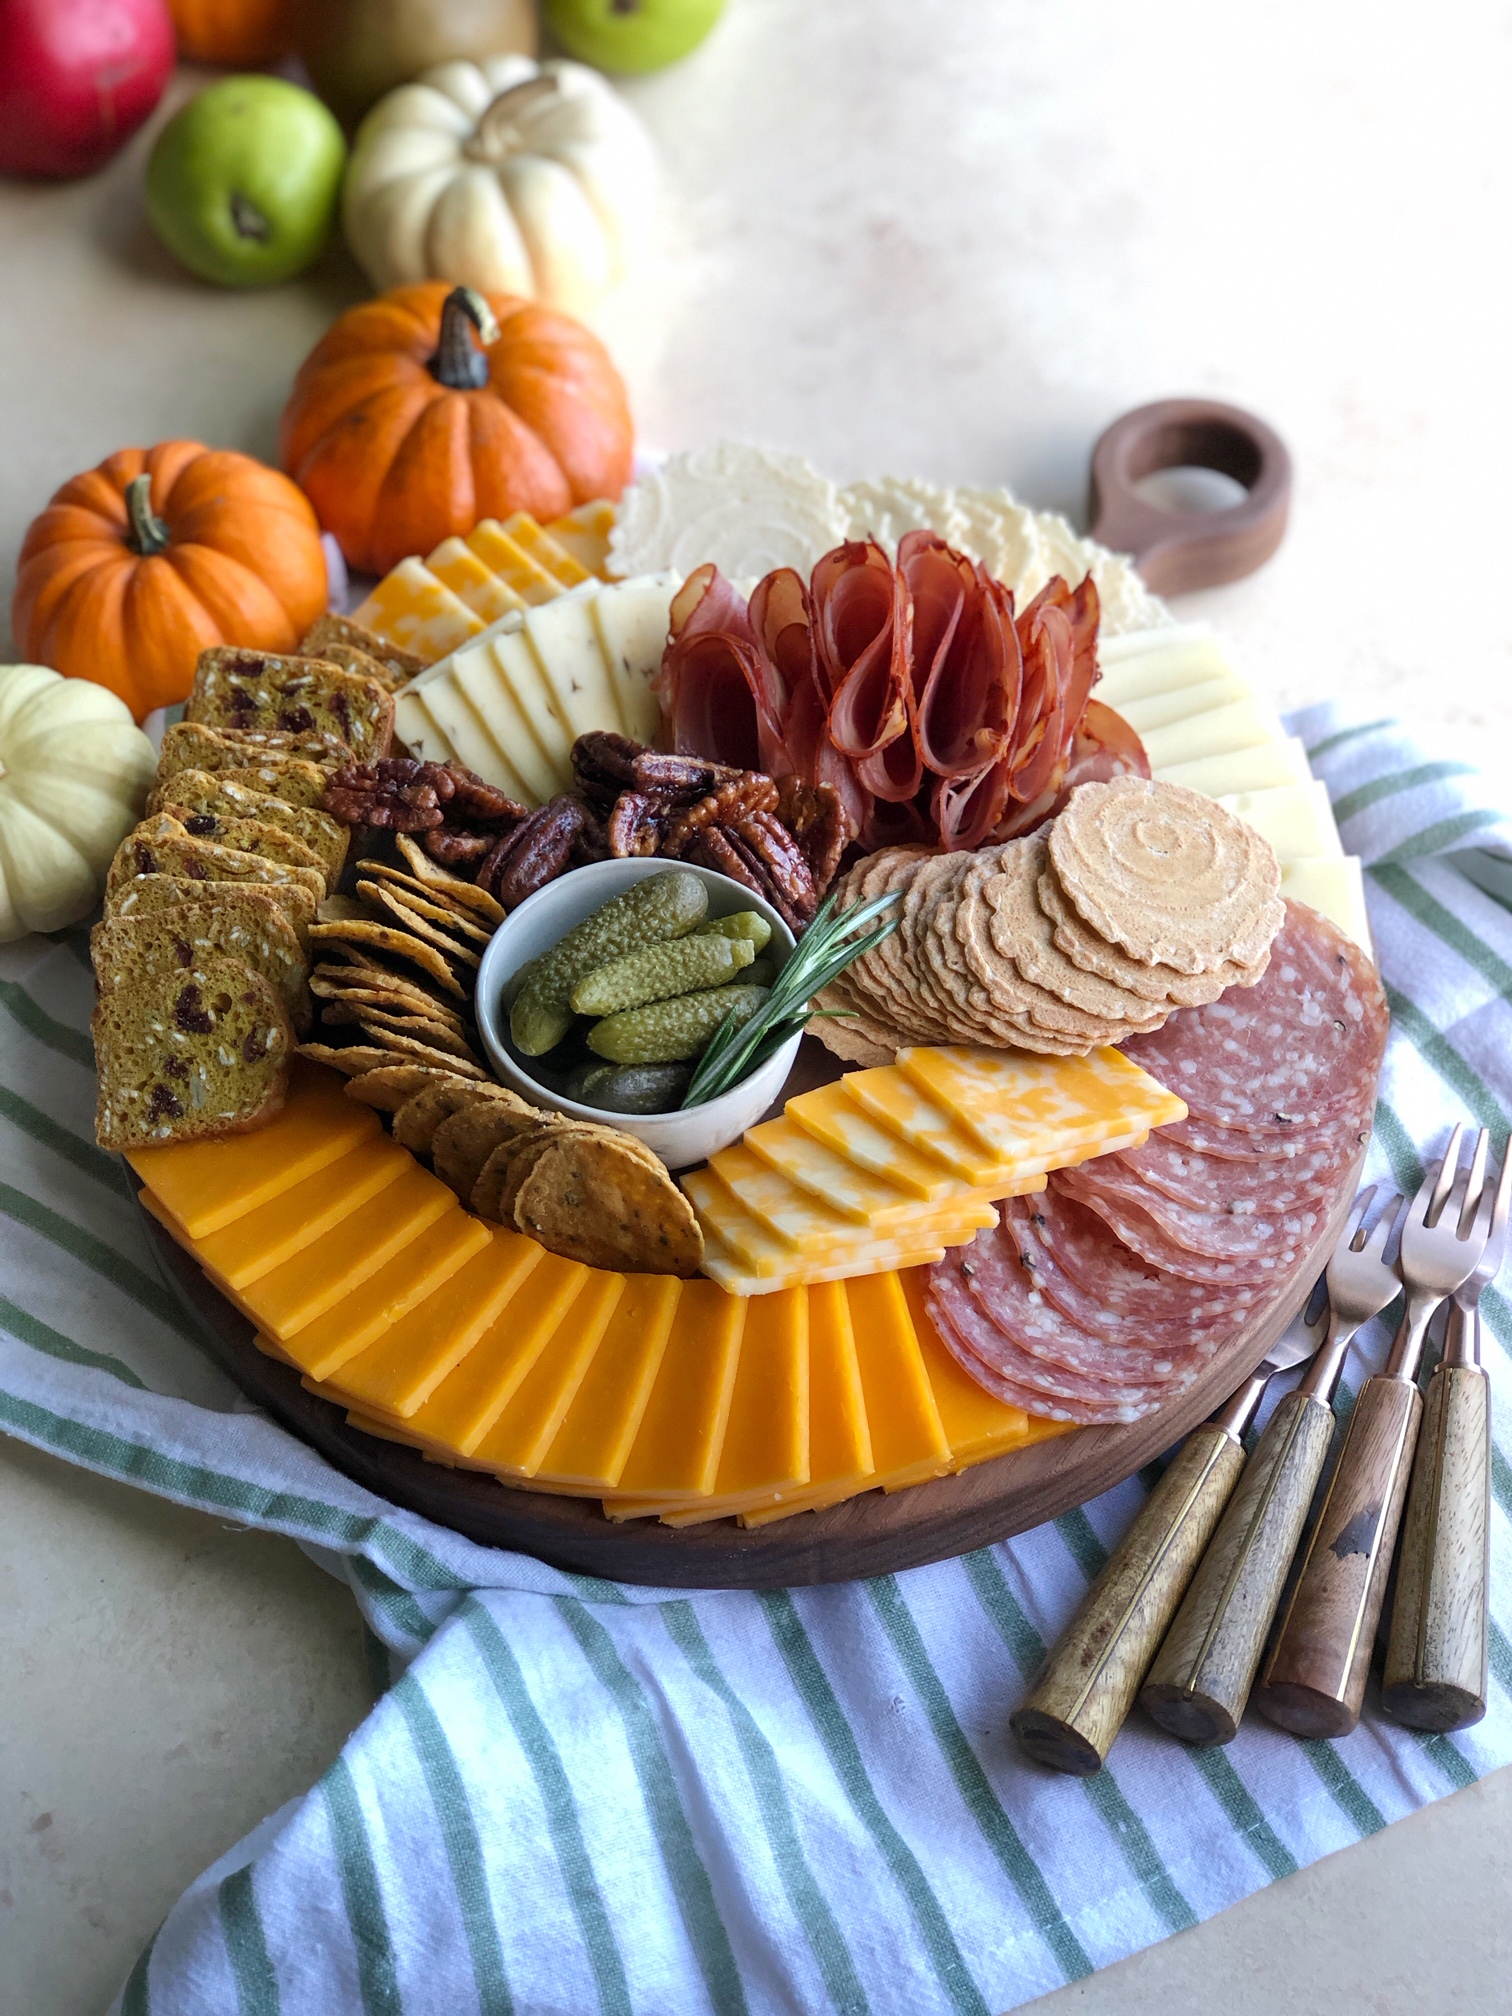 How To Make The Perfect Cheese Board! Perfect for entertaining, parties, the holidays and family gatherings! Learn how to assemble one here!